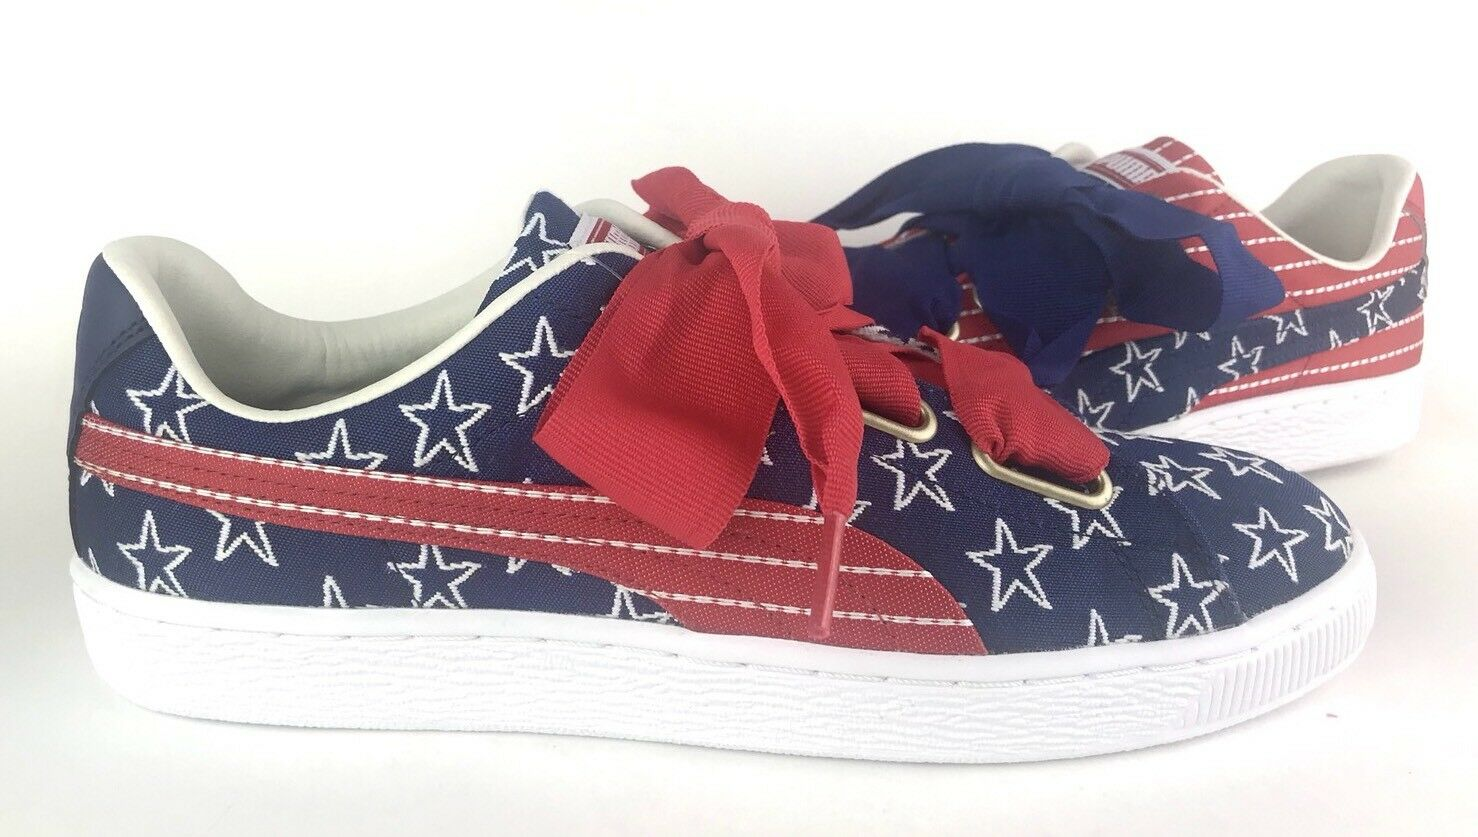 2e1c6a446 PUMA Women s Basket Heart Heart Heart 4th Of July Stars Stripes Red White  Blue Size 10